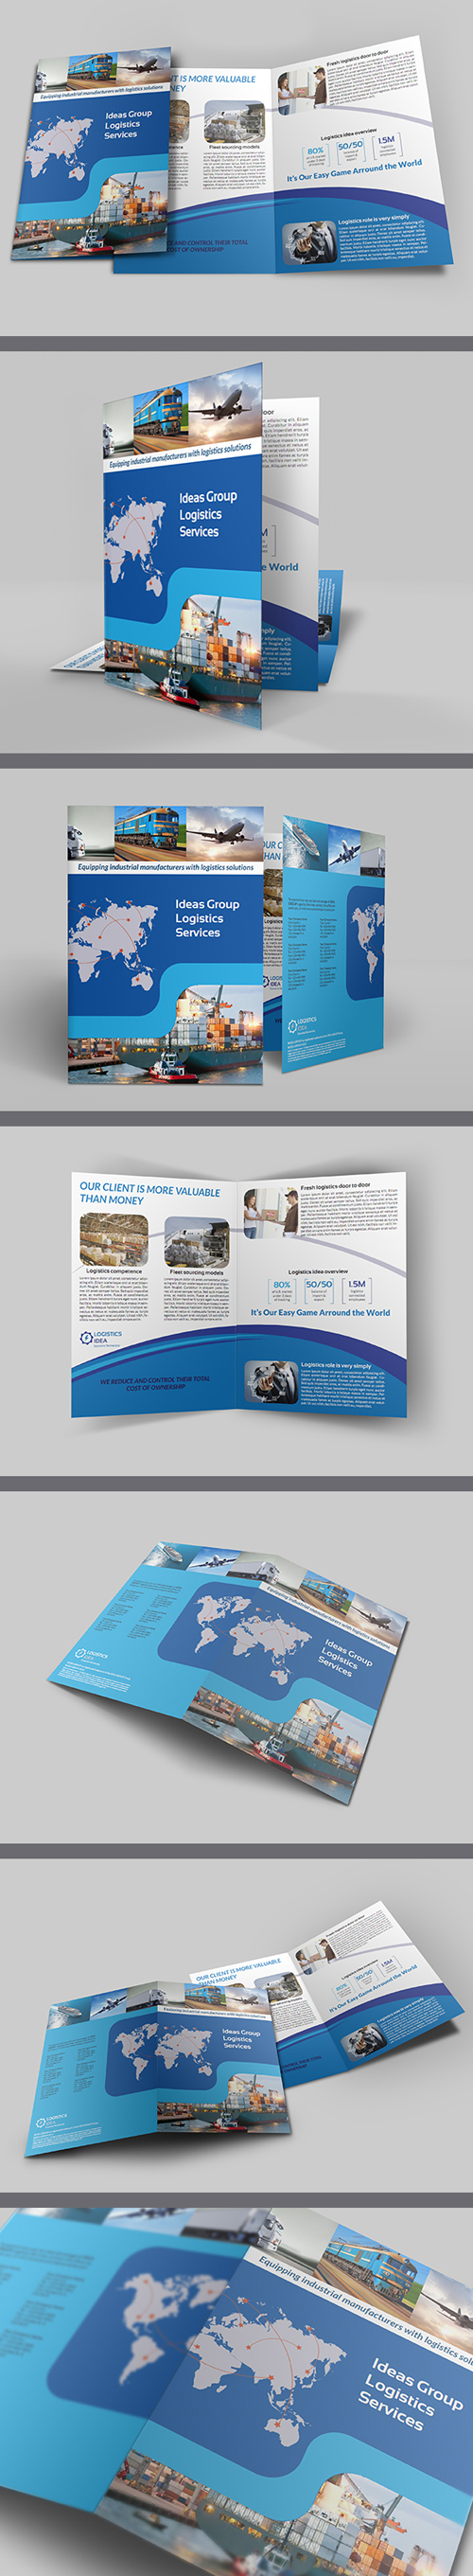 Logistics Services Bi Fold Brochure Template